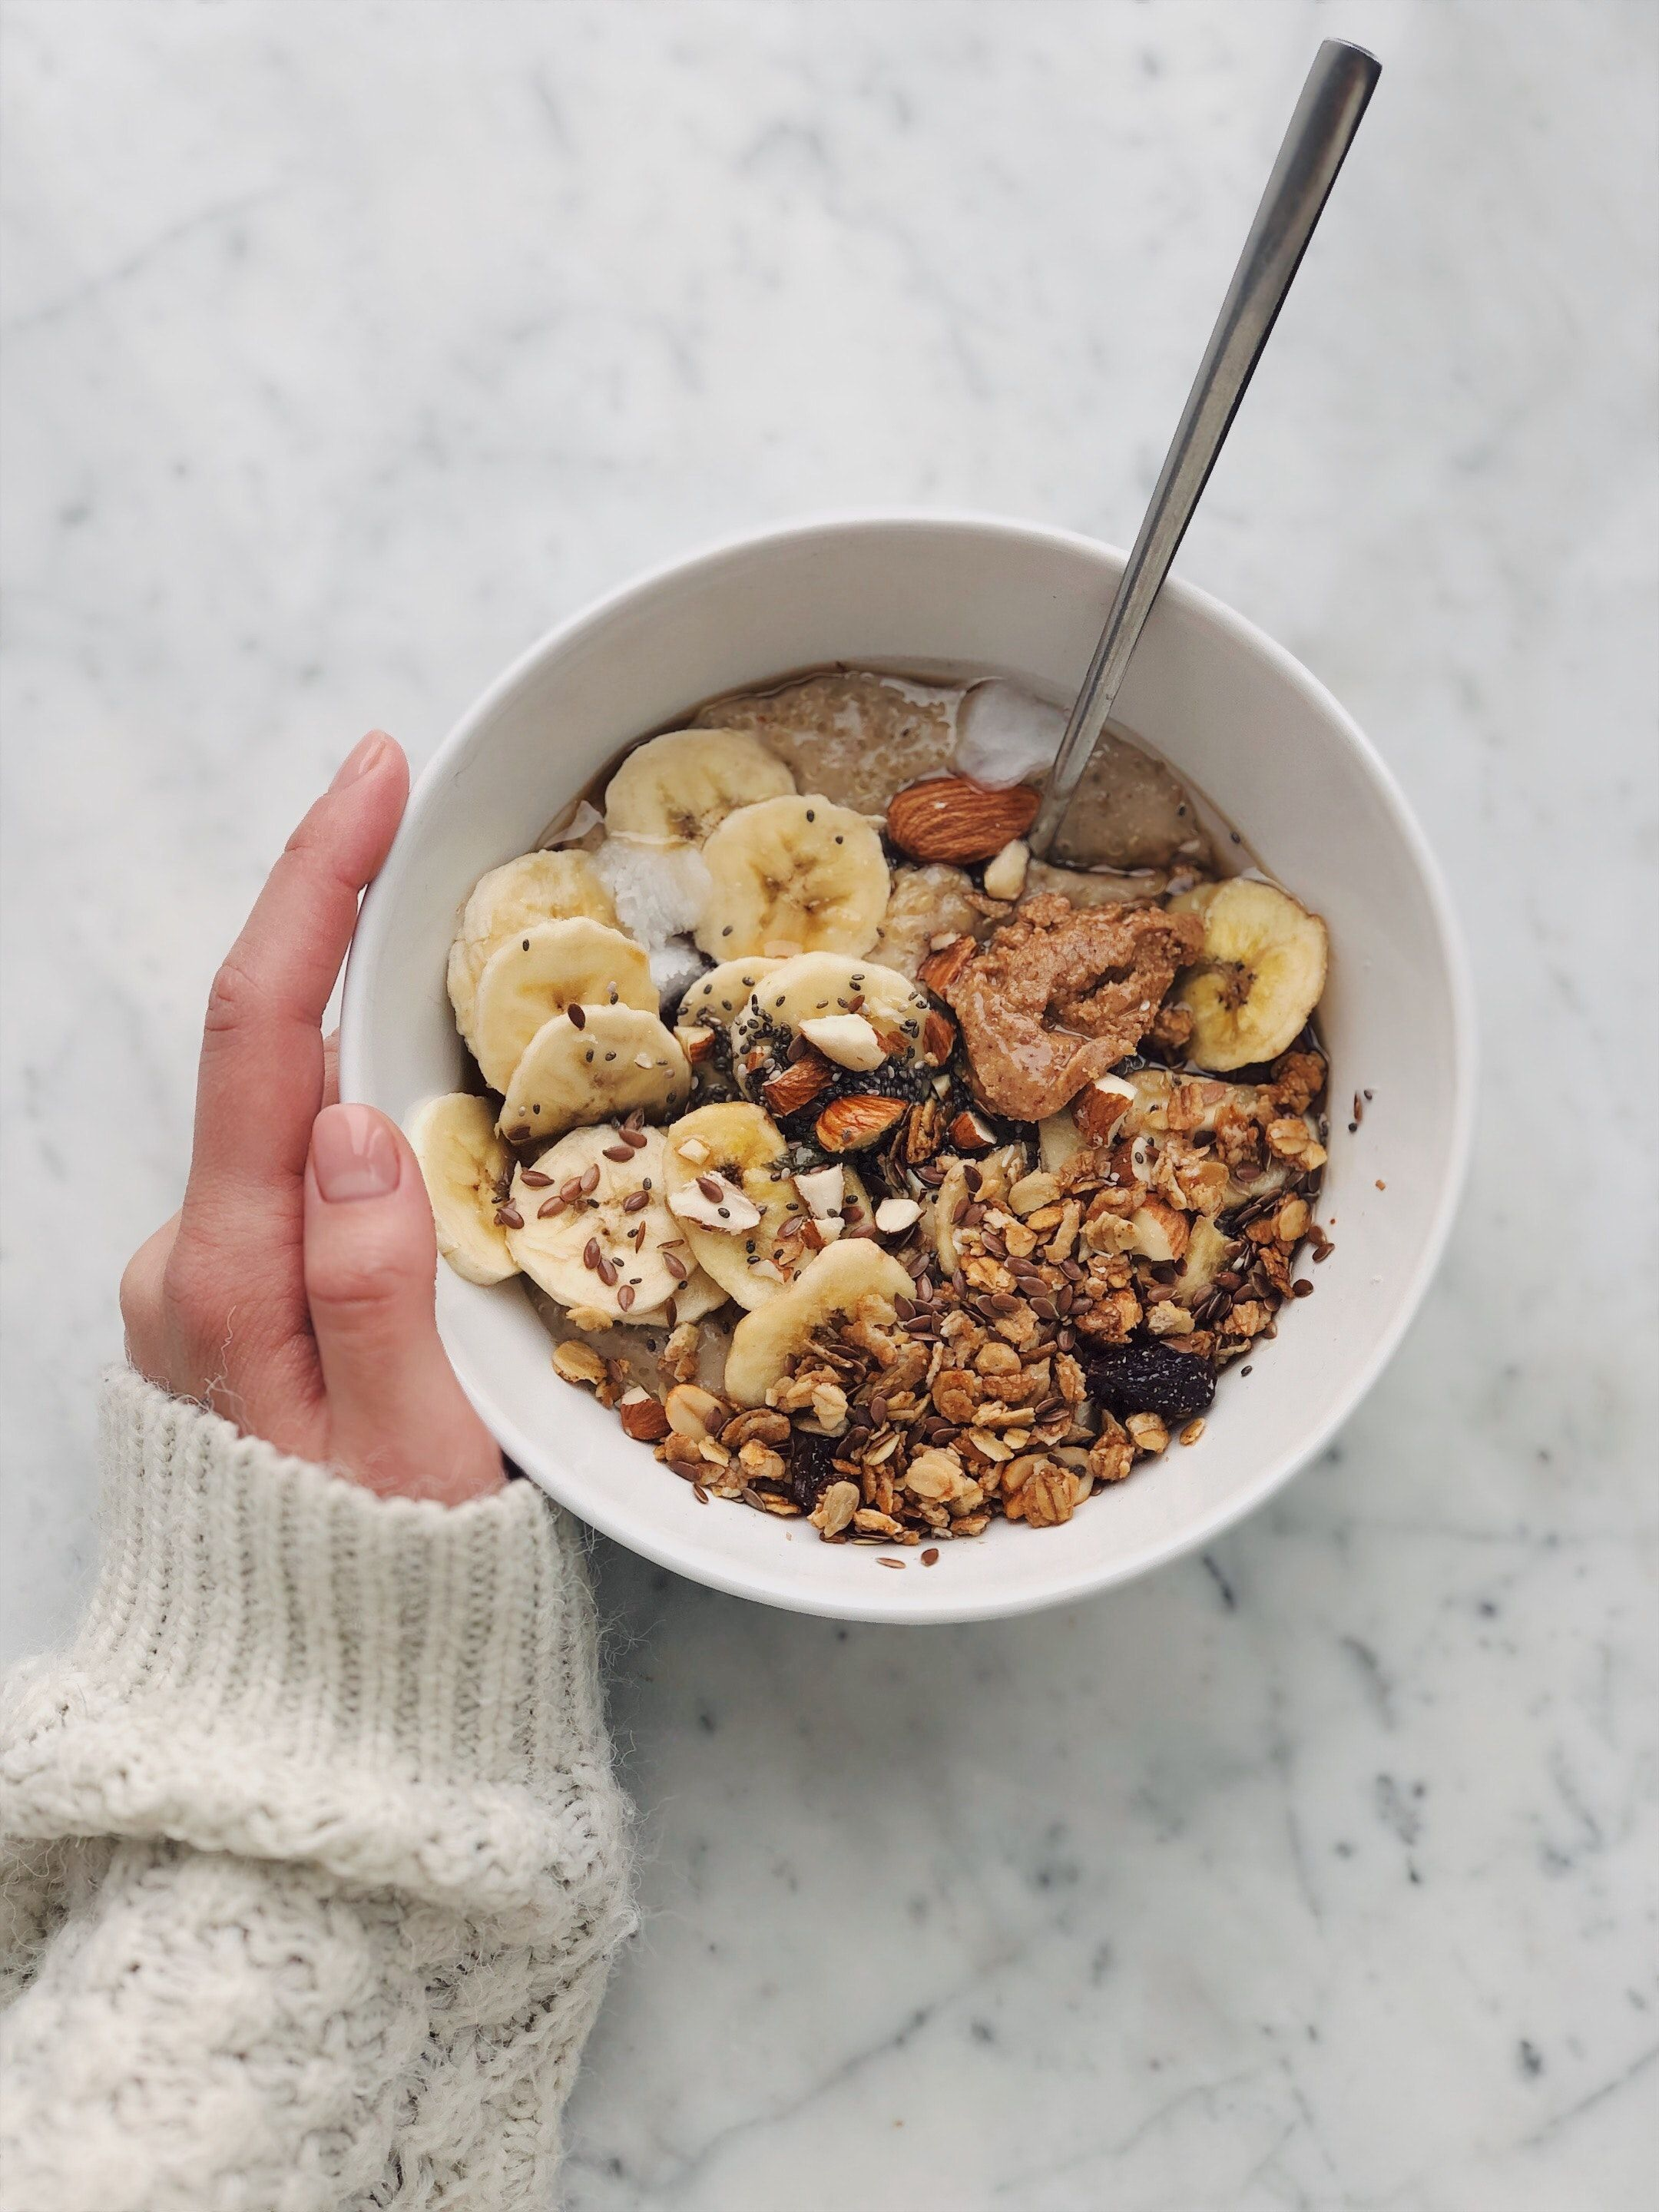 17 High Protein Breakfasts (That Aren't All Eggs) to Prevent Snack Attacks